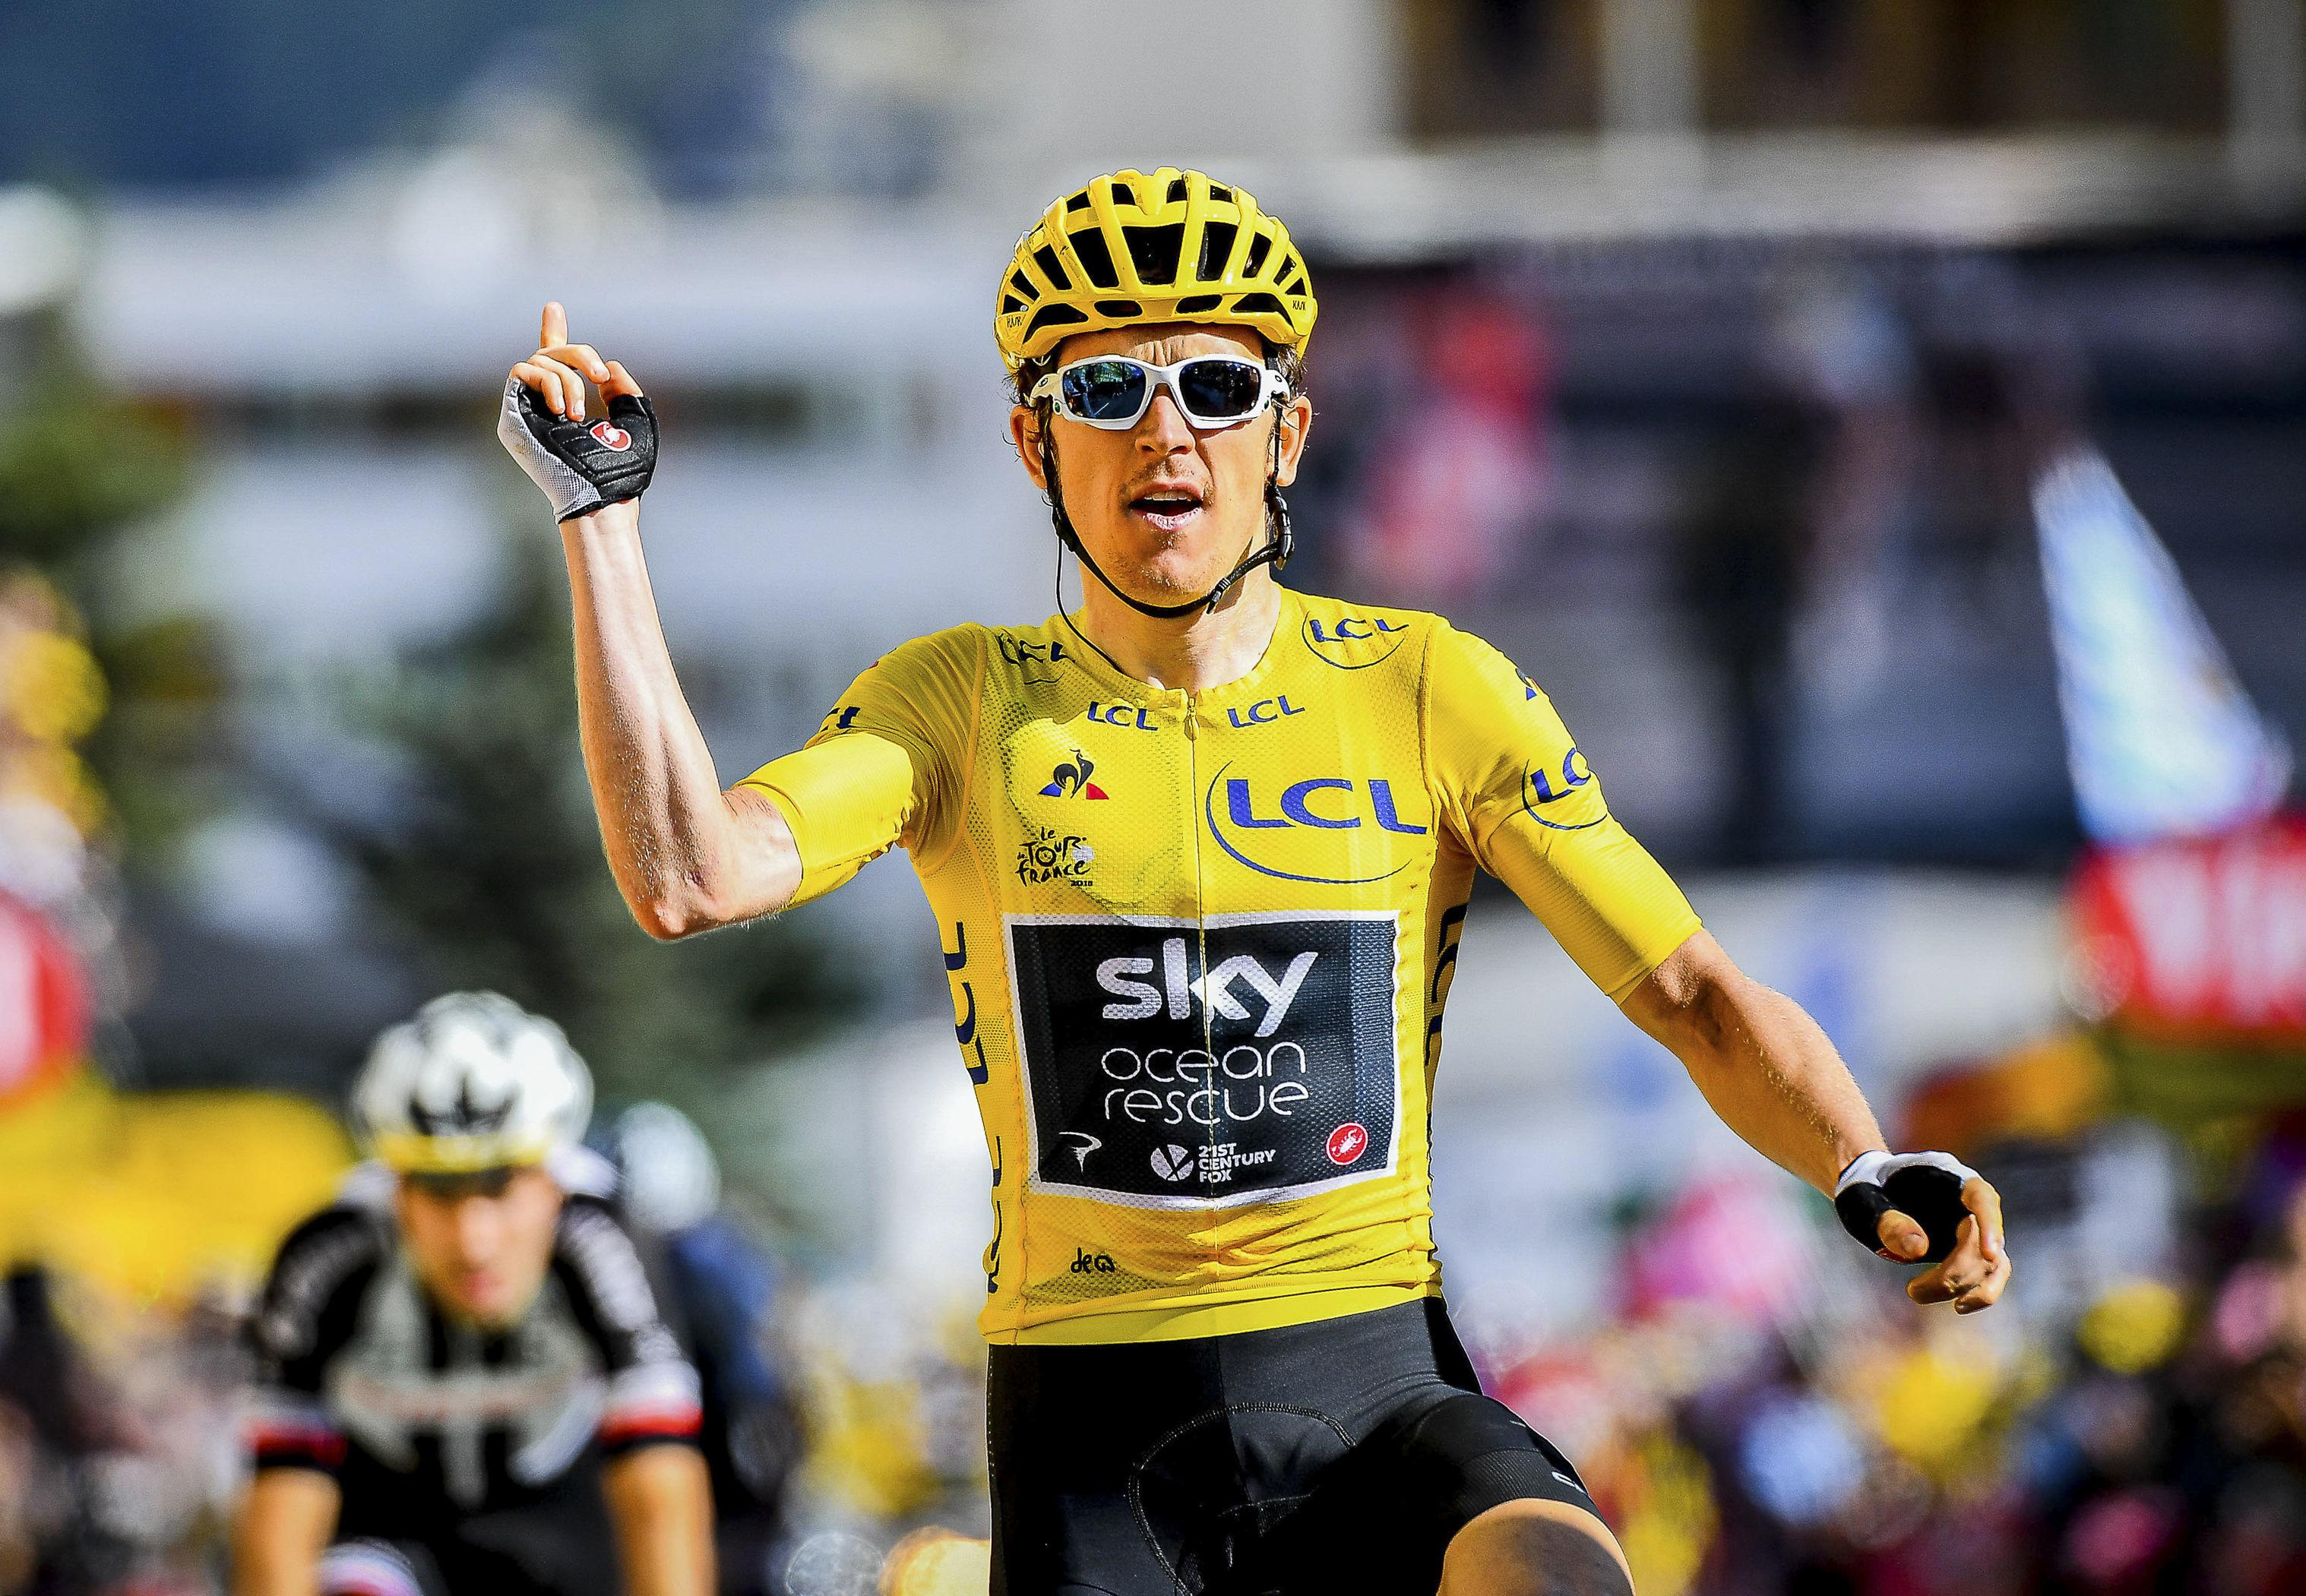 Thomas, who won Tour de France this year, says he will cry if he wins SPOTY